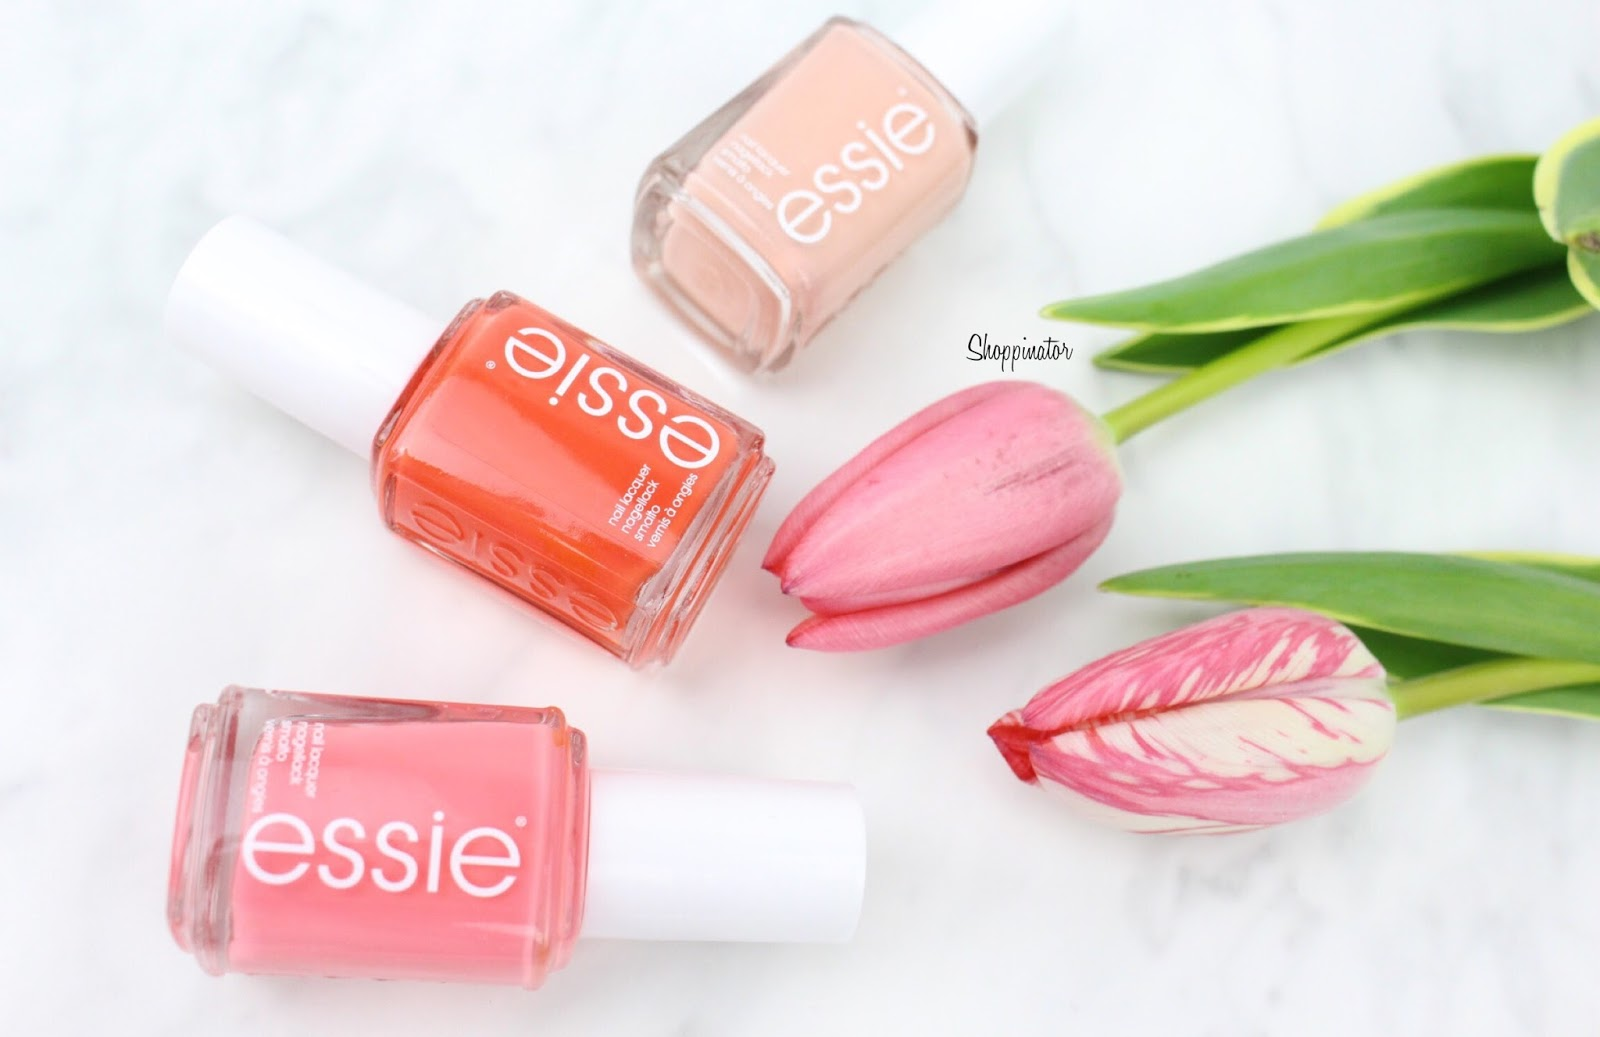 Shoppinator-Shoppination-Essie-Frühling-Spring-2016-Nagellack-Lounge-Lover-Swatch-Swatches-Off-Tropic-Offtropic-Shades-On-Shadeson-Nude-Rosa-Flamino-Flamingopink-Pink-Sunshinestateofmind-Sunshine-State-of-Mind-Poolsideservice-Pool-Side-Service-HIgh-Class-Affair-Highclassaffair-Lila-Grün-Lackiert